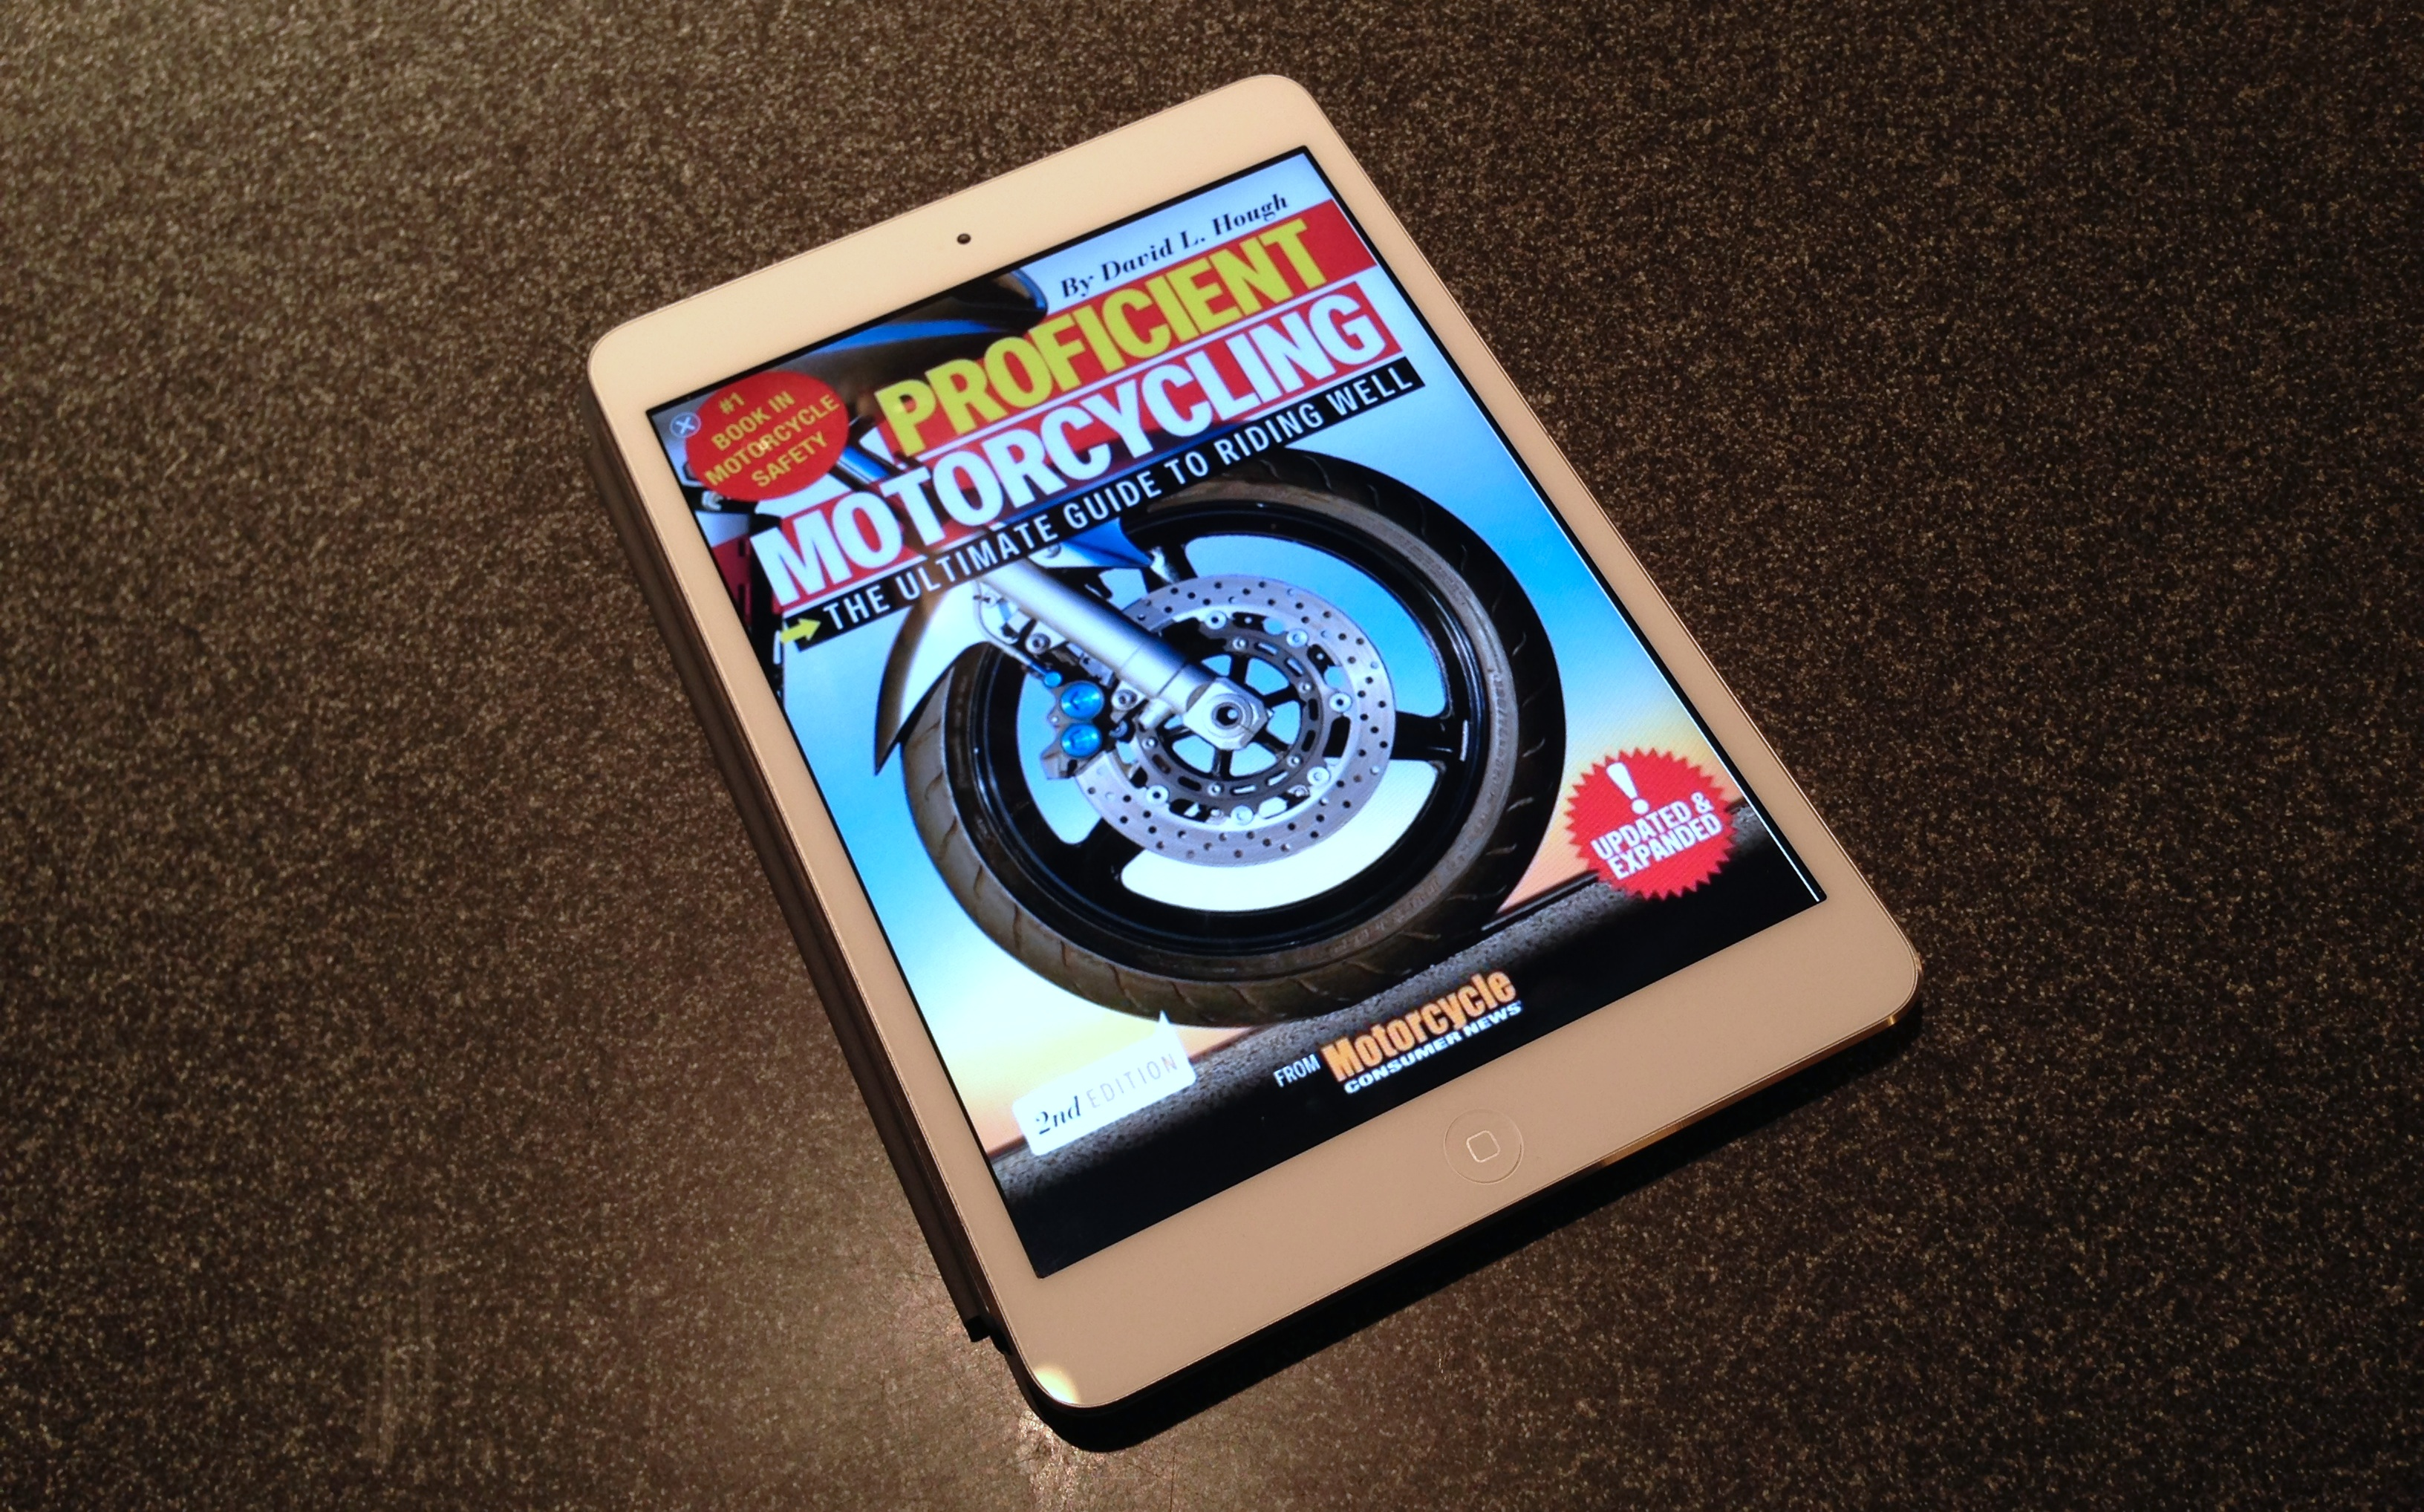 ScooterFile Review: Proficient Motorcycling